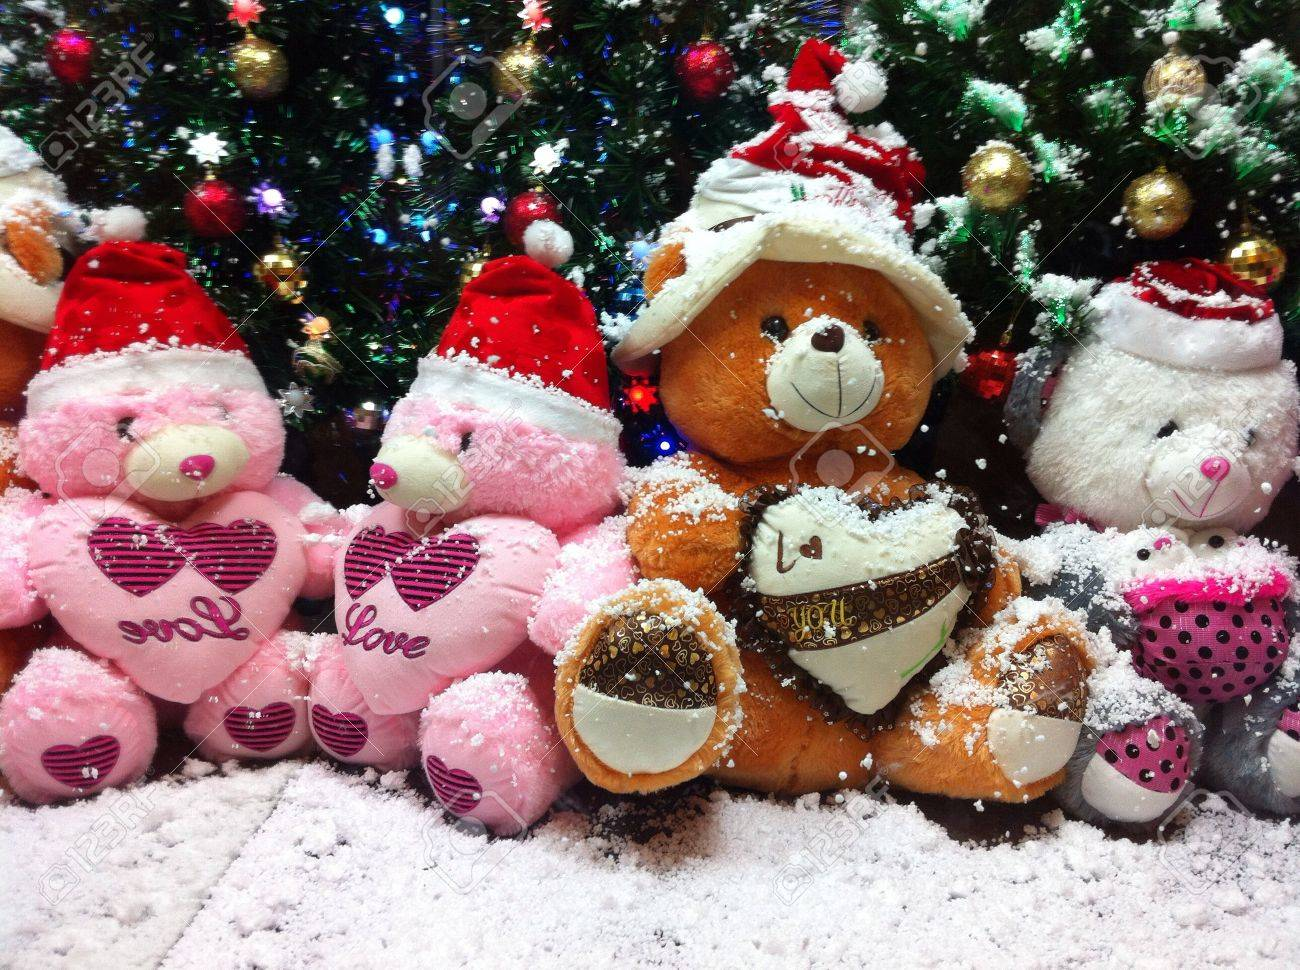 Dolls Under Christmas Tree Stock Photo, Picture And Royalty Free ...